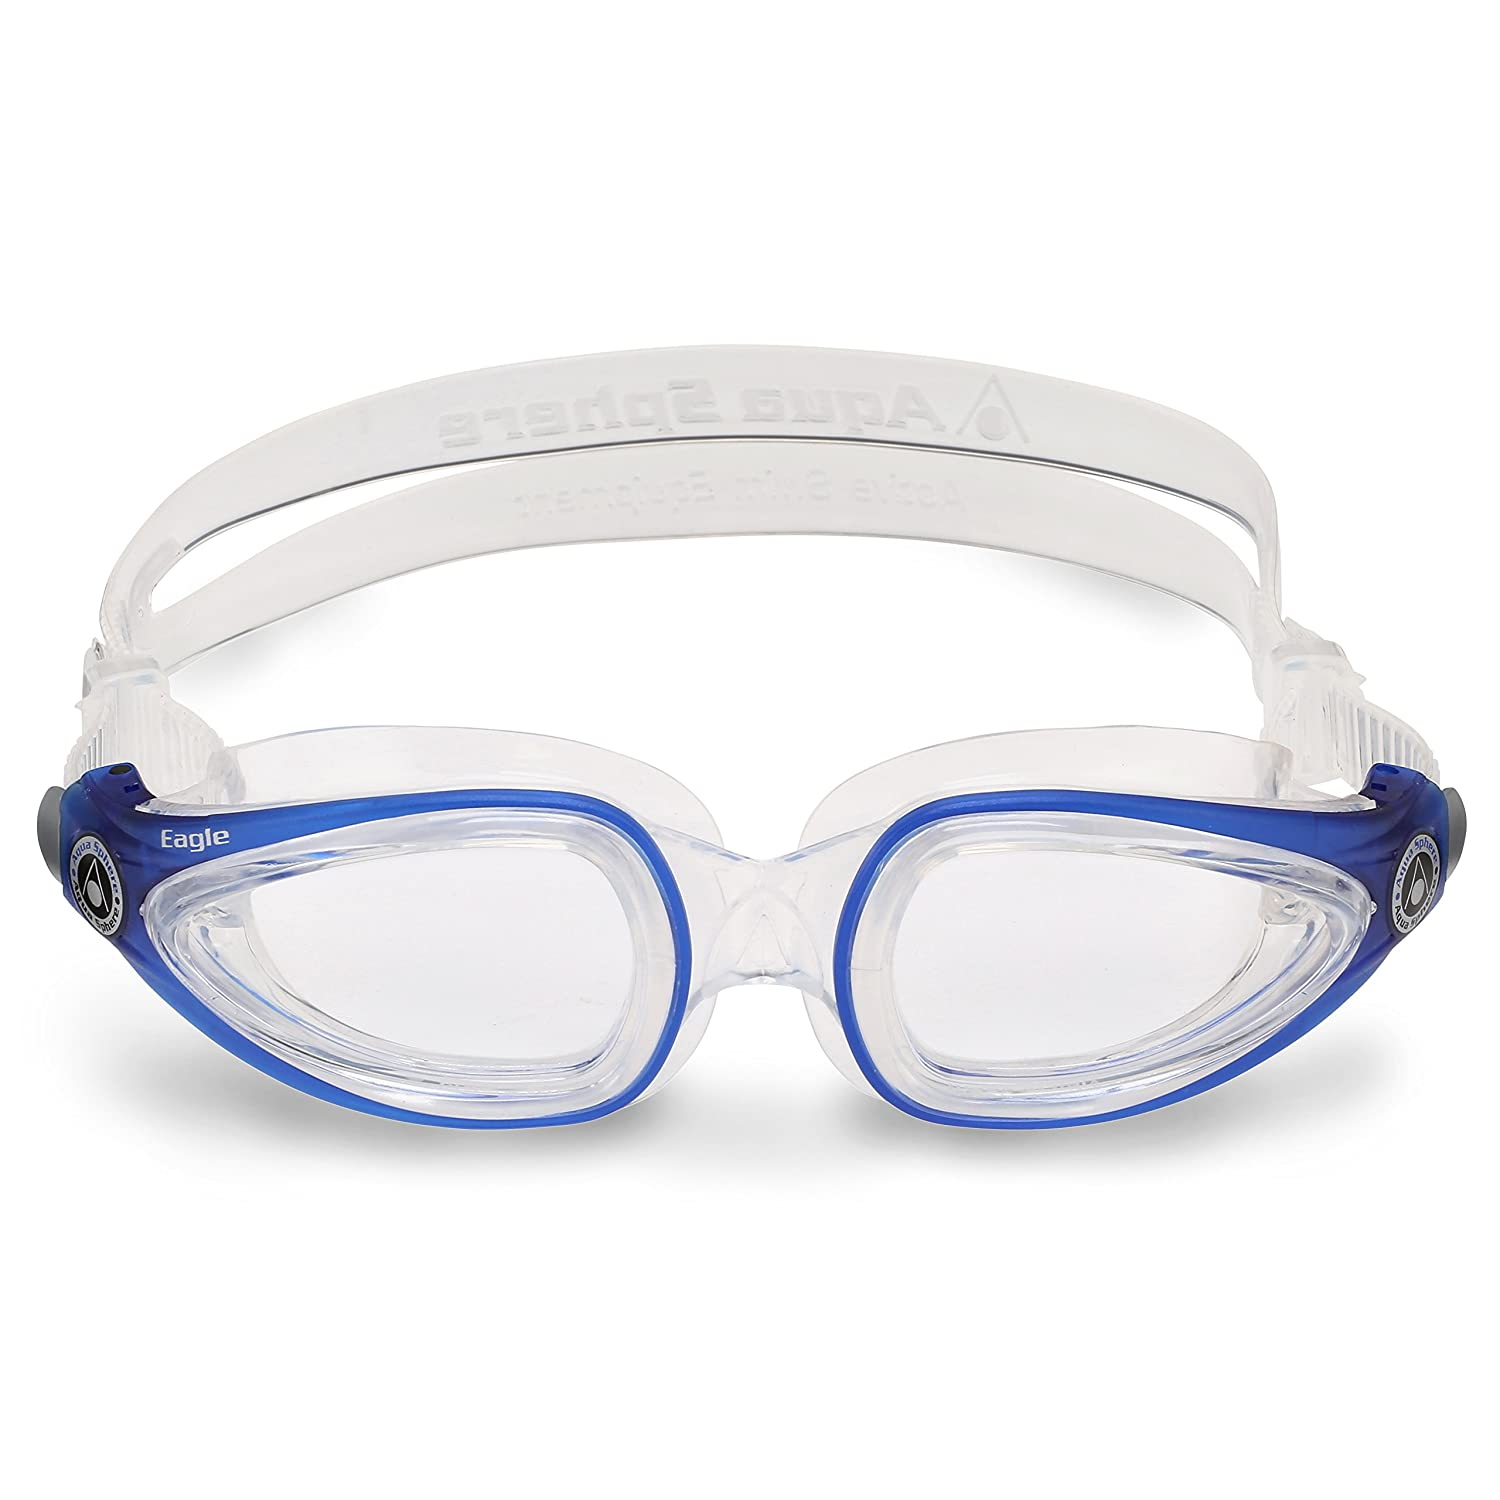 90090078ff Amazon.com   Aqua Sphere Eagle Goggle (Clear Lens